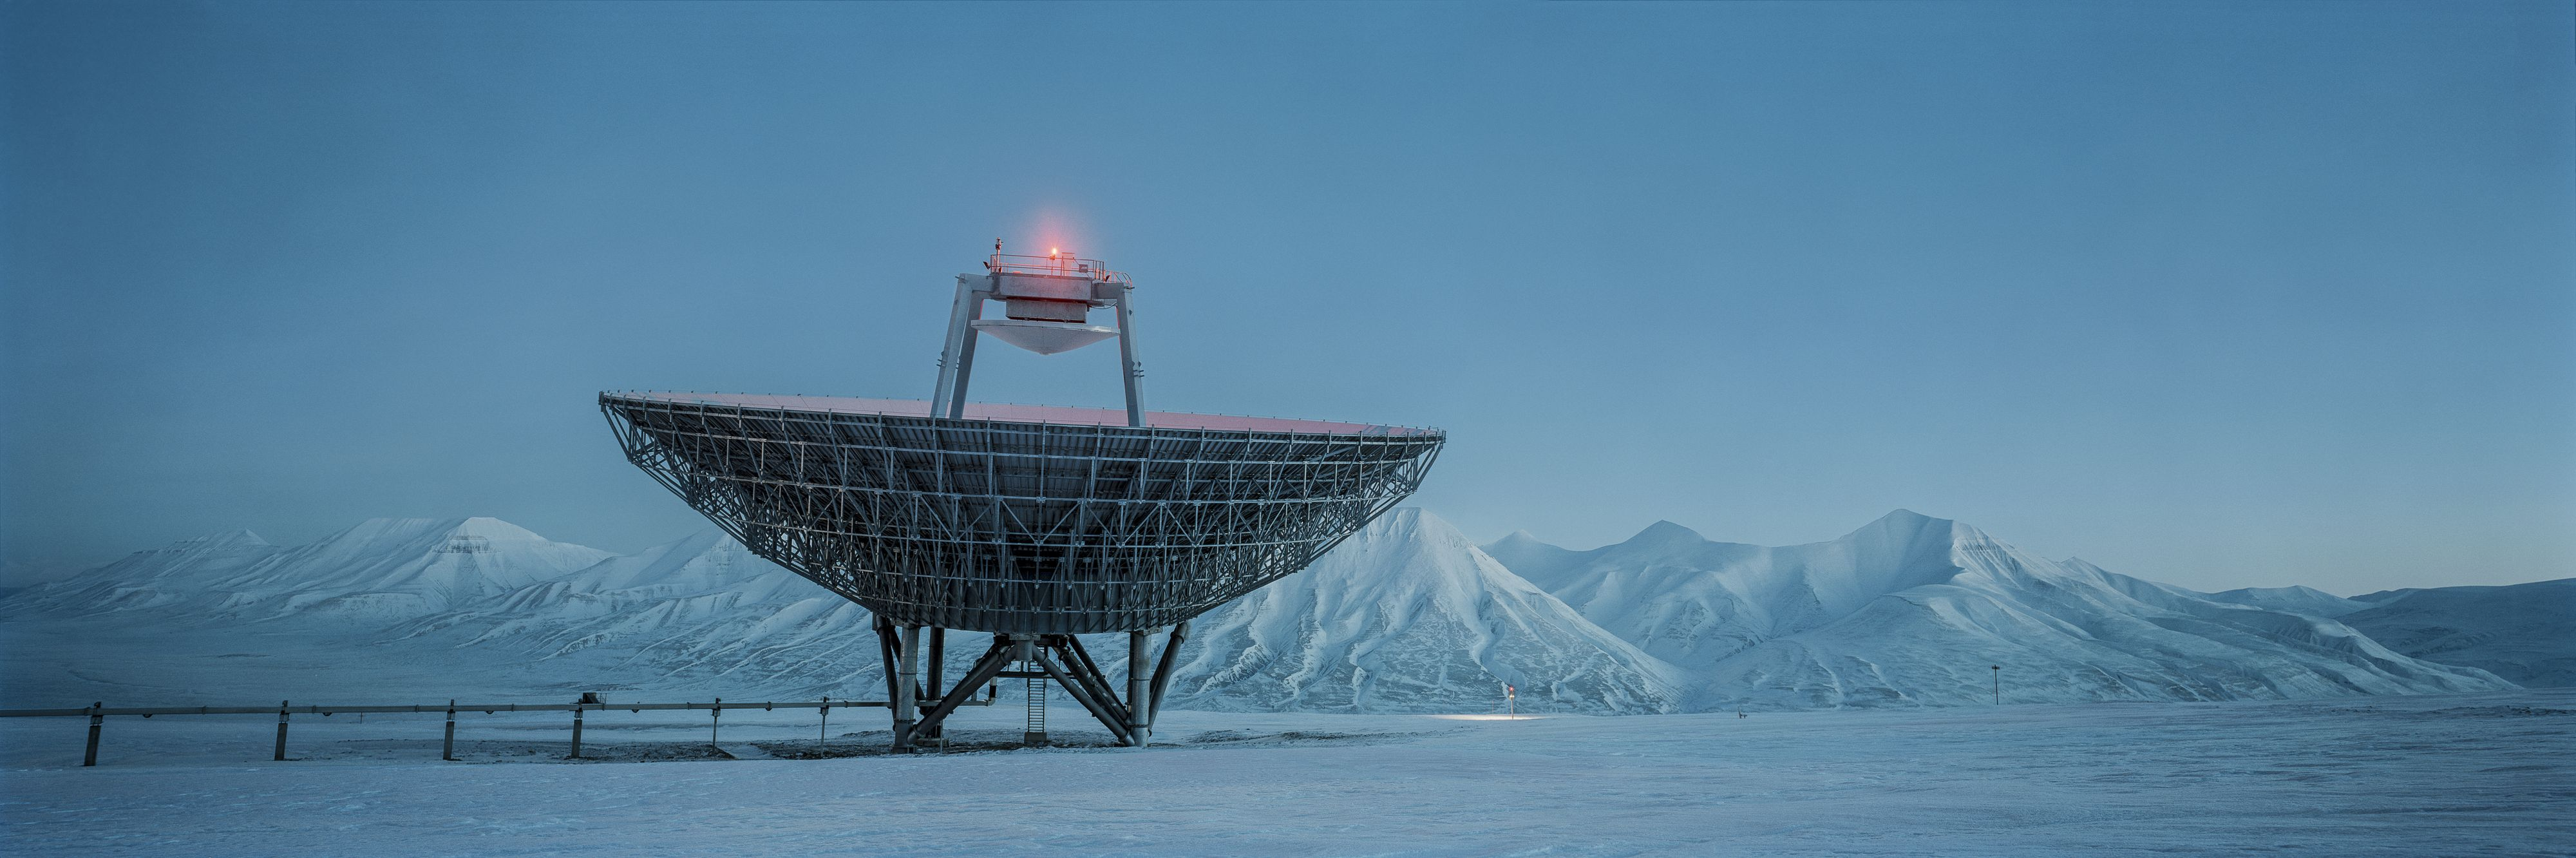 Winternight, Arctic Technology, Spitsbergen